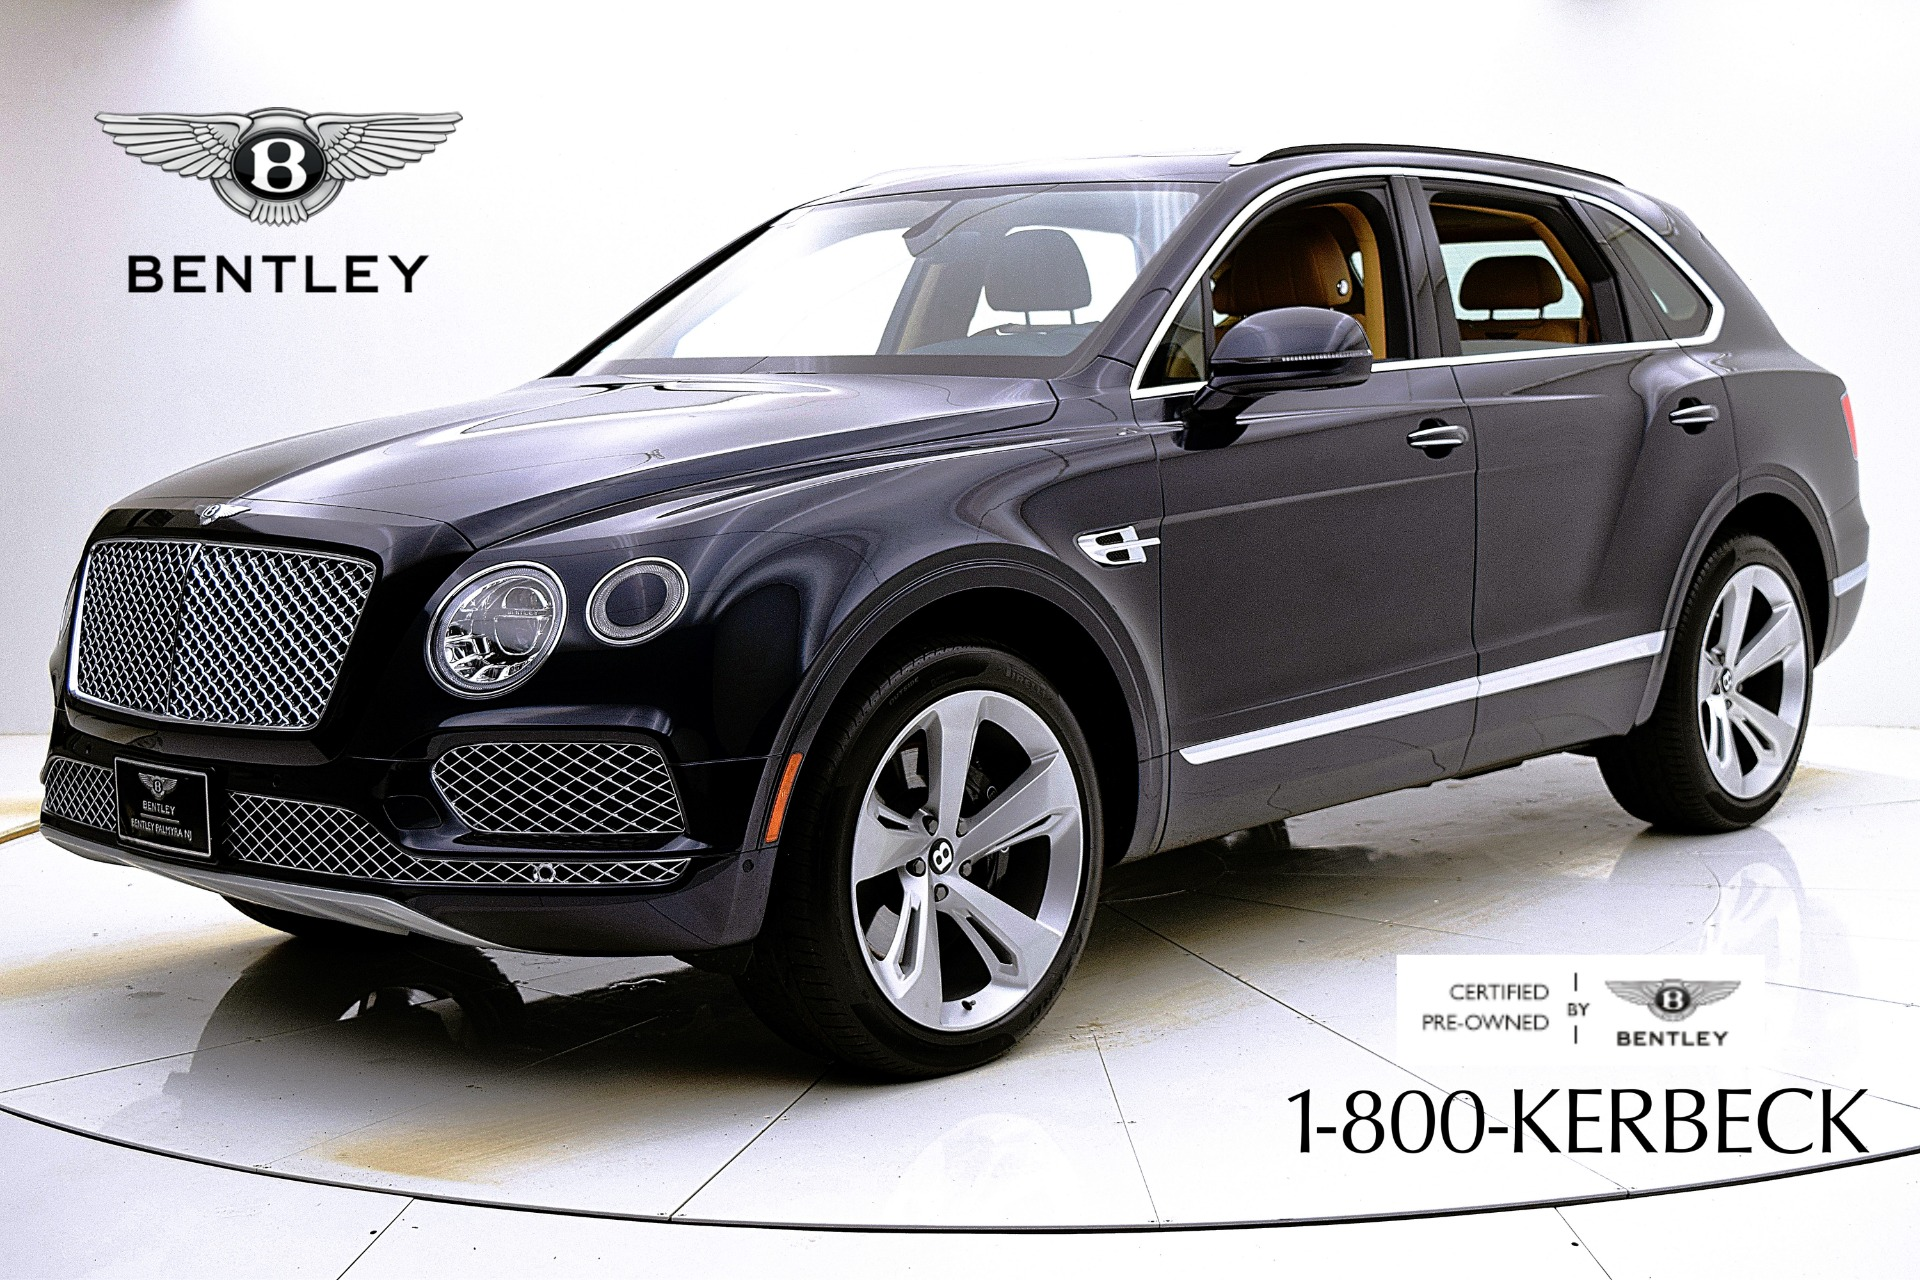 Used 2019 Bentley Bentayga V8 for sale $169,880 at F.C. Kerbeck Aston Martin in Palmyra NJ 08065 2